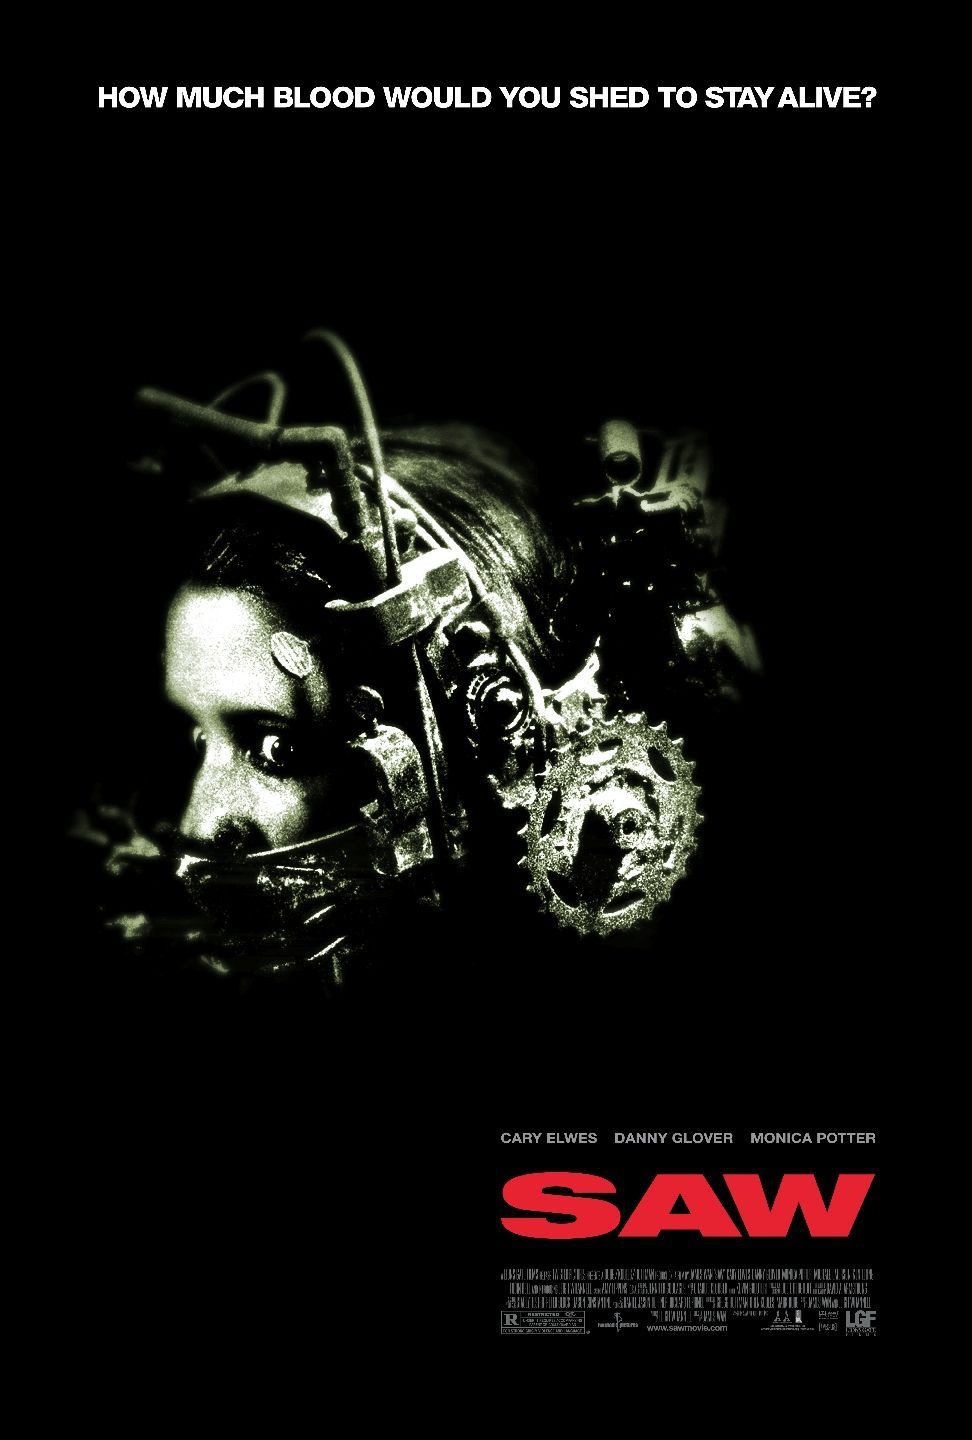 SAW - film poster - first horror